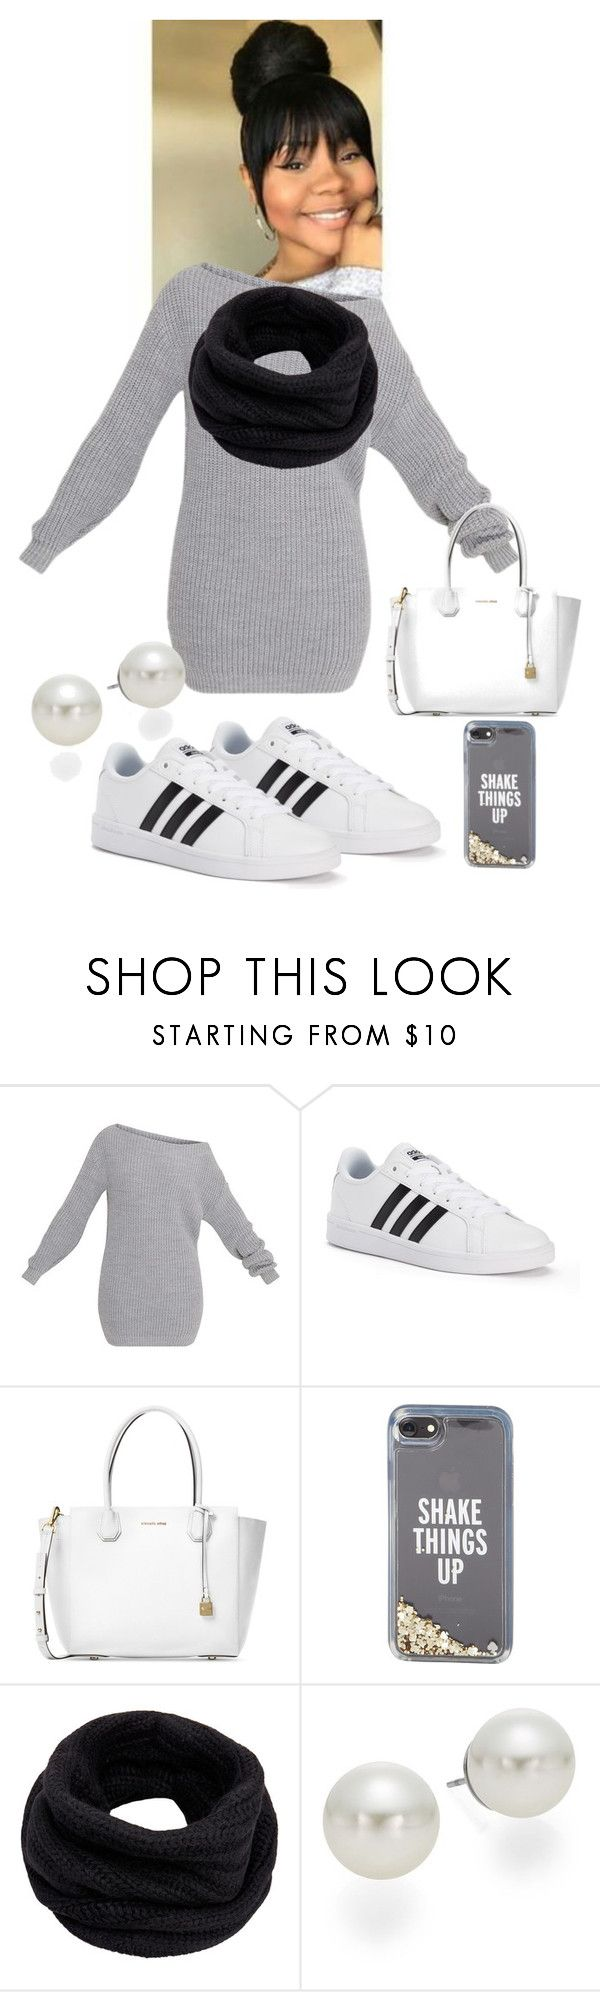 """""""Casual Day"""" by jasiana122 on Polyvore featuring Hai, adidas, Michael Kors, Kate Spade, Helmut Lang and AK Anne Klein"""